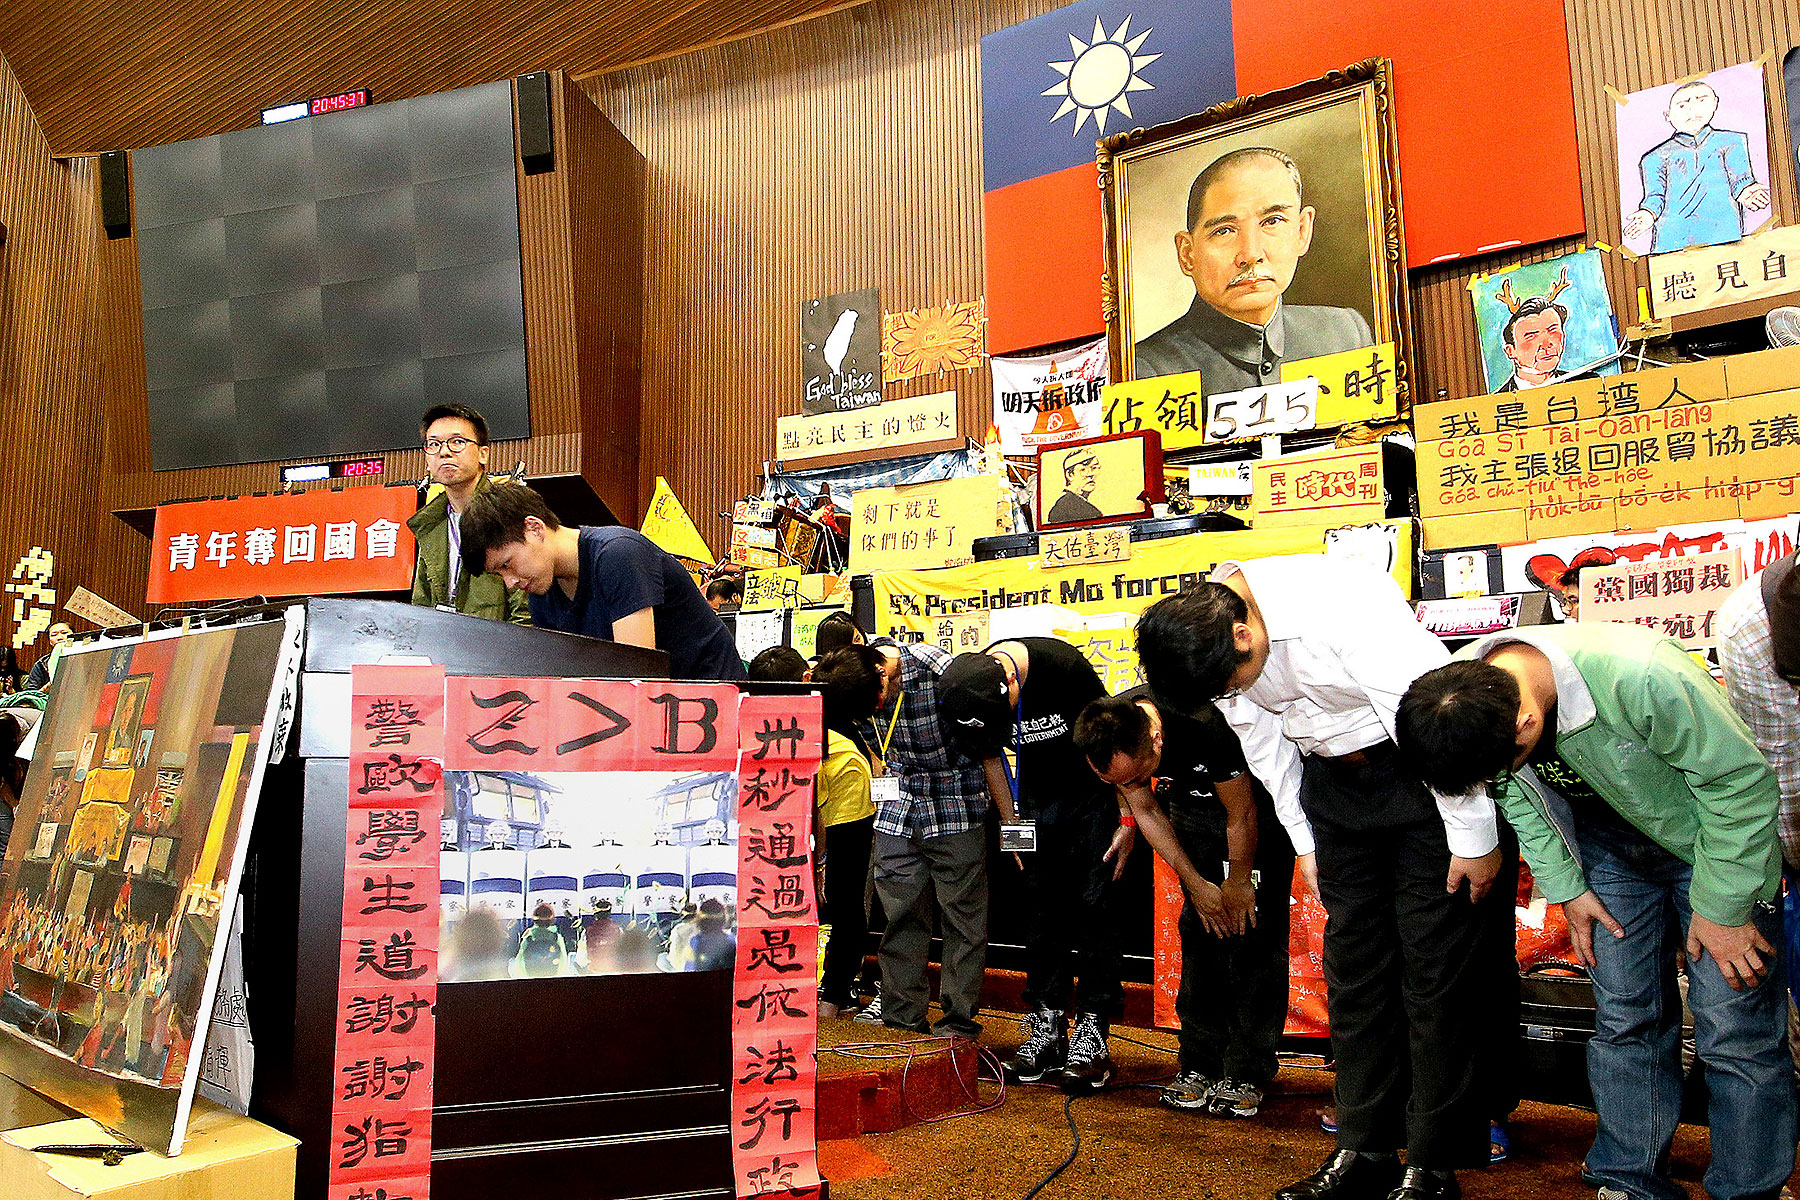 Student leaders bow to supporters during a news conference at Taiwan's legislative Yuan, the island's parliament, in Taipei on April 7, 2014